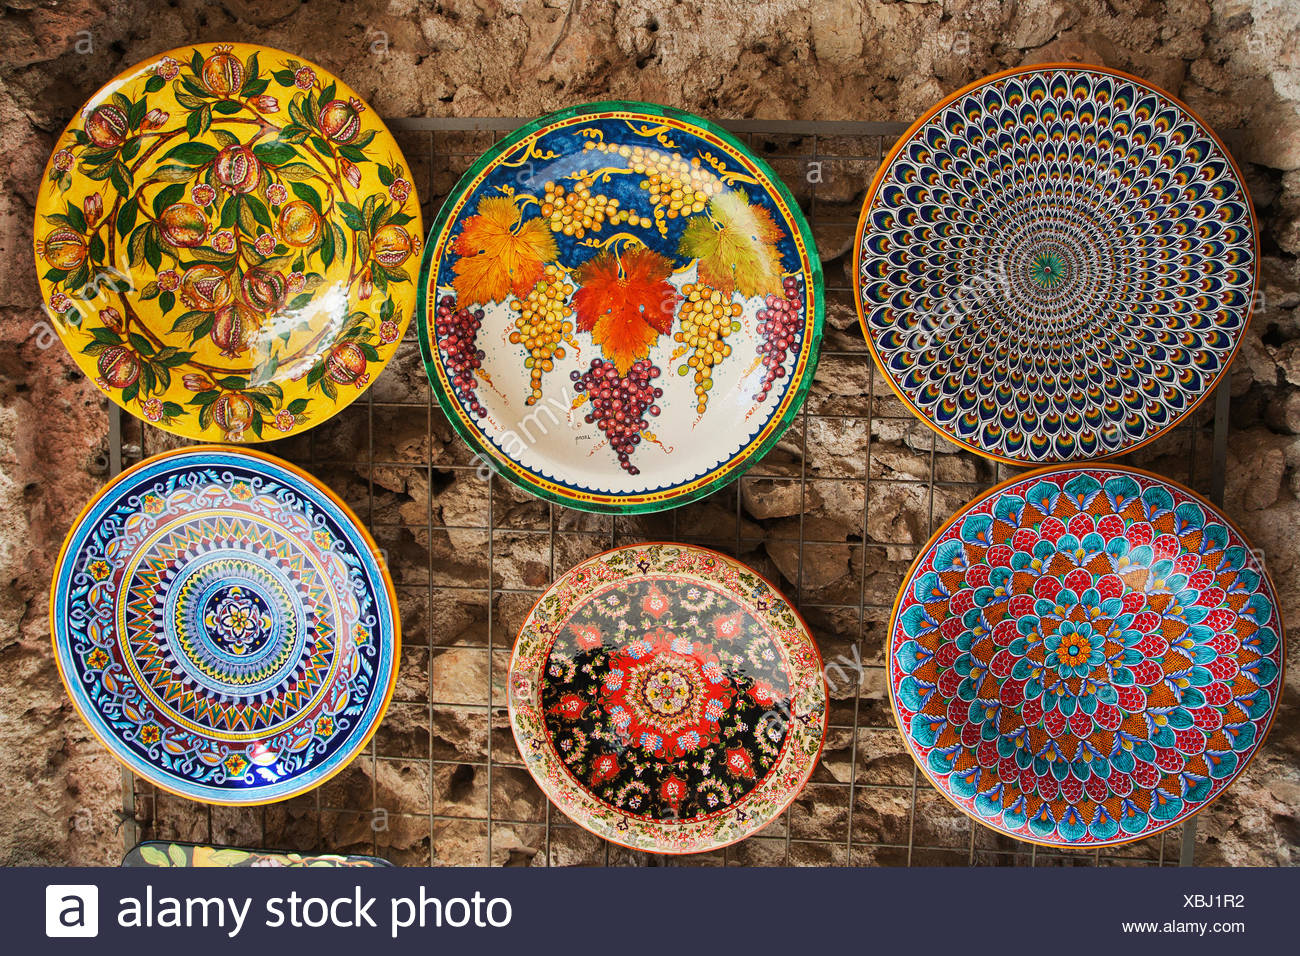 Italian Decorative Plates For Hanging.Decorative Plates Hanging At A Market Stall Amalfi